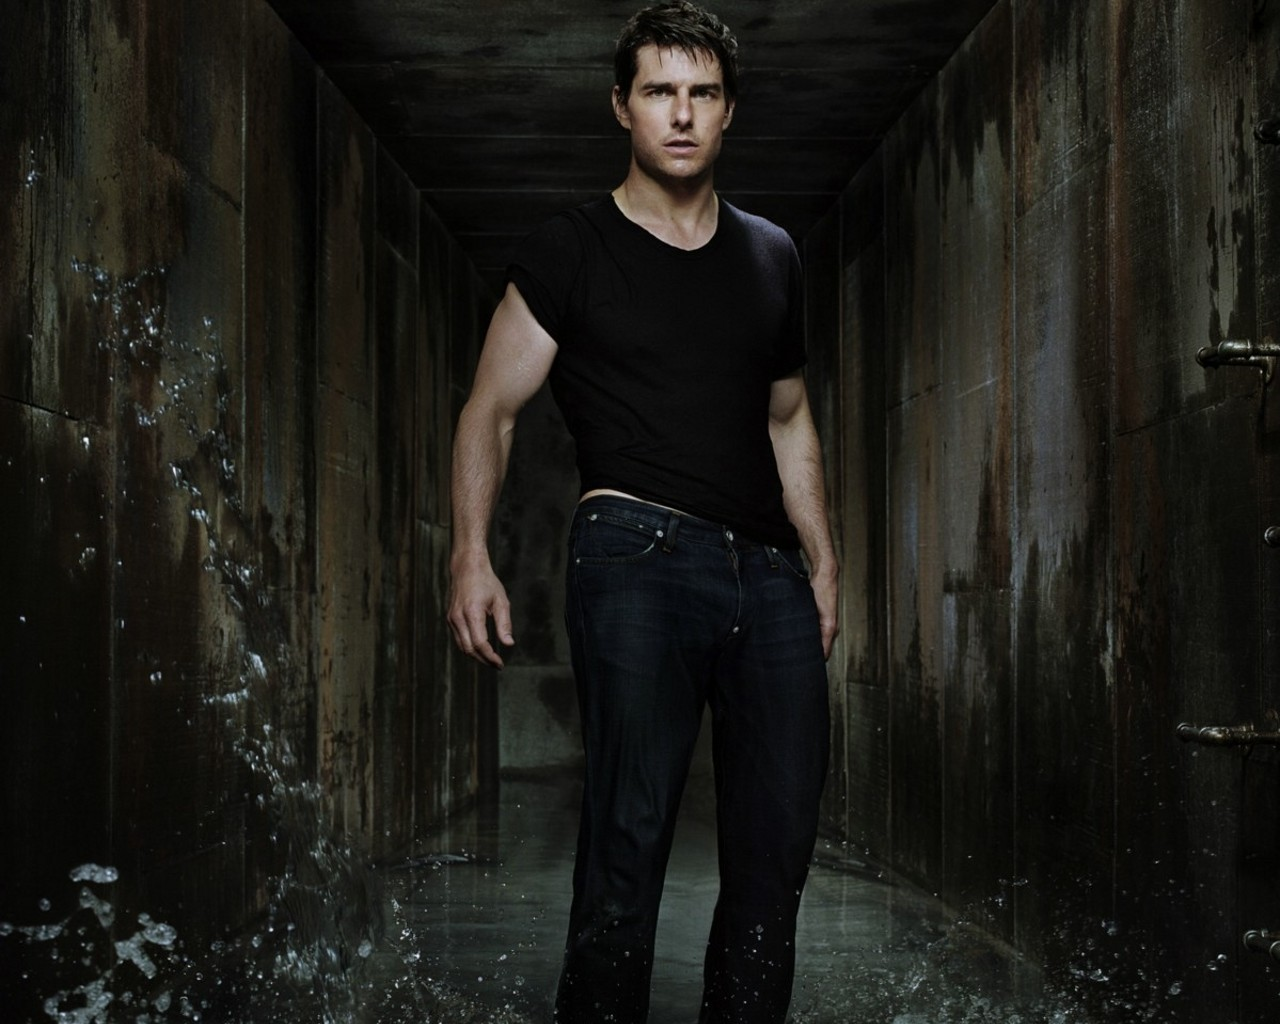 Tom Cruise wallpapers, Pictures, Photos, Screensavers 1280x1024